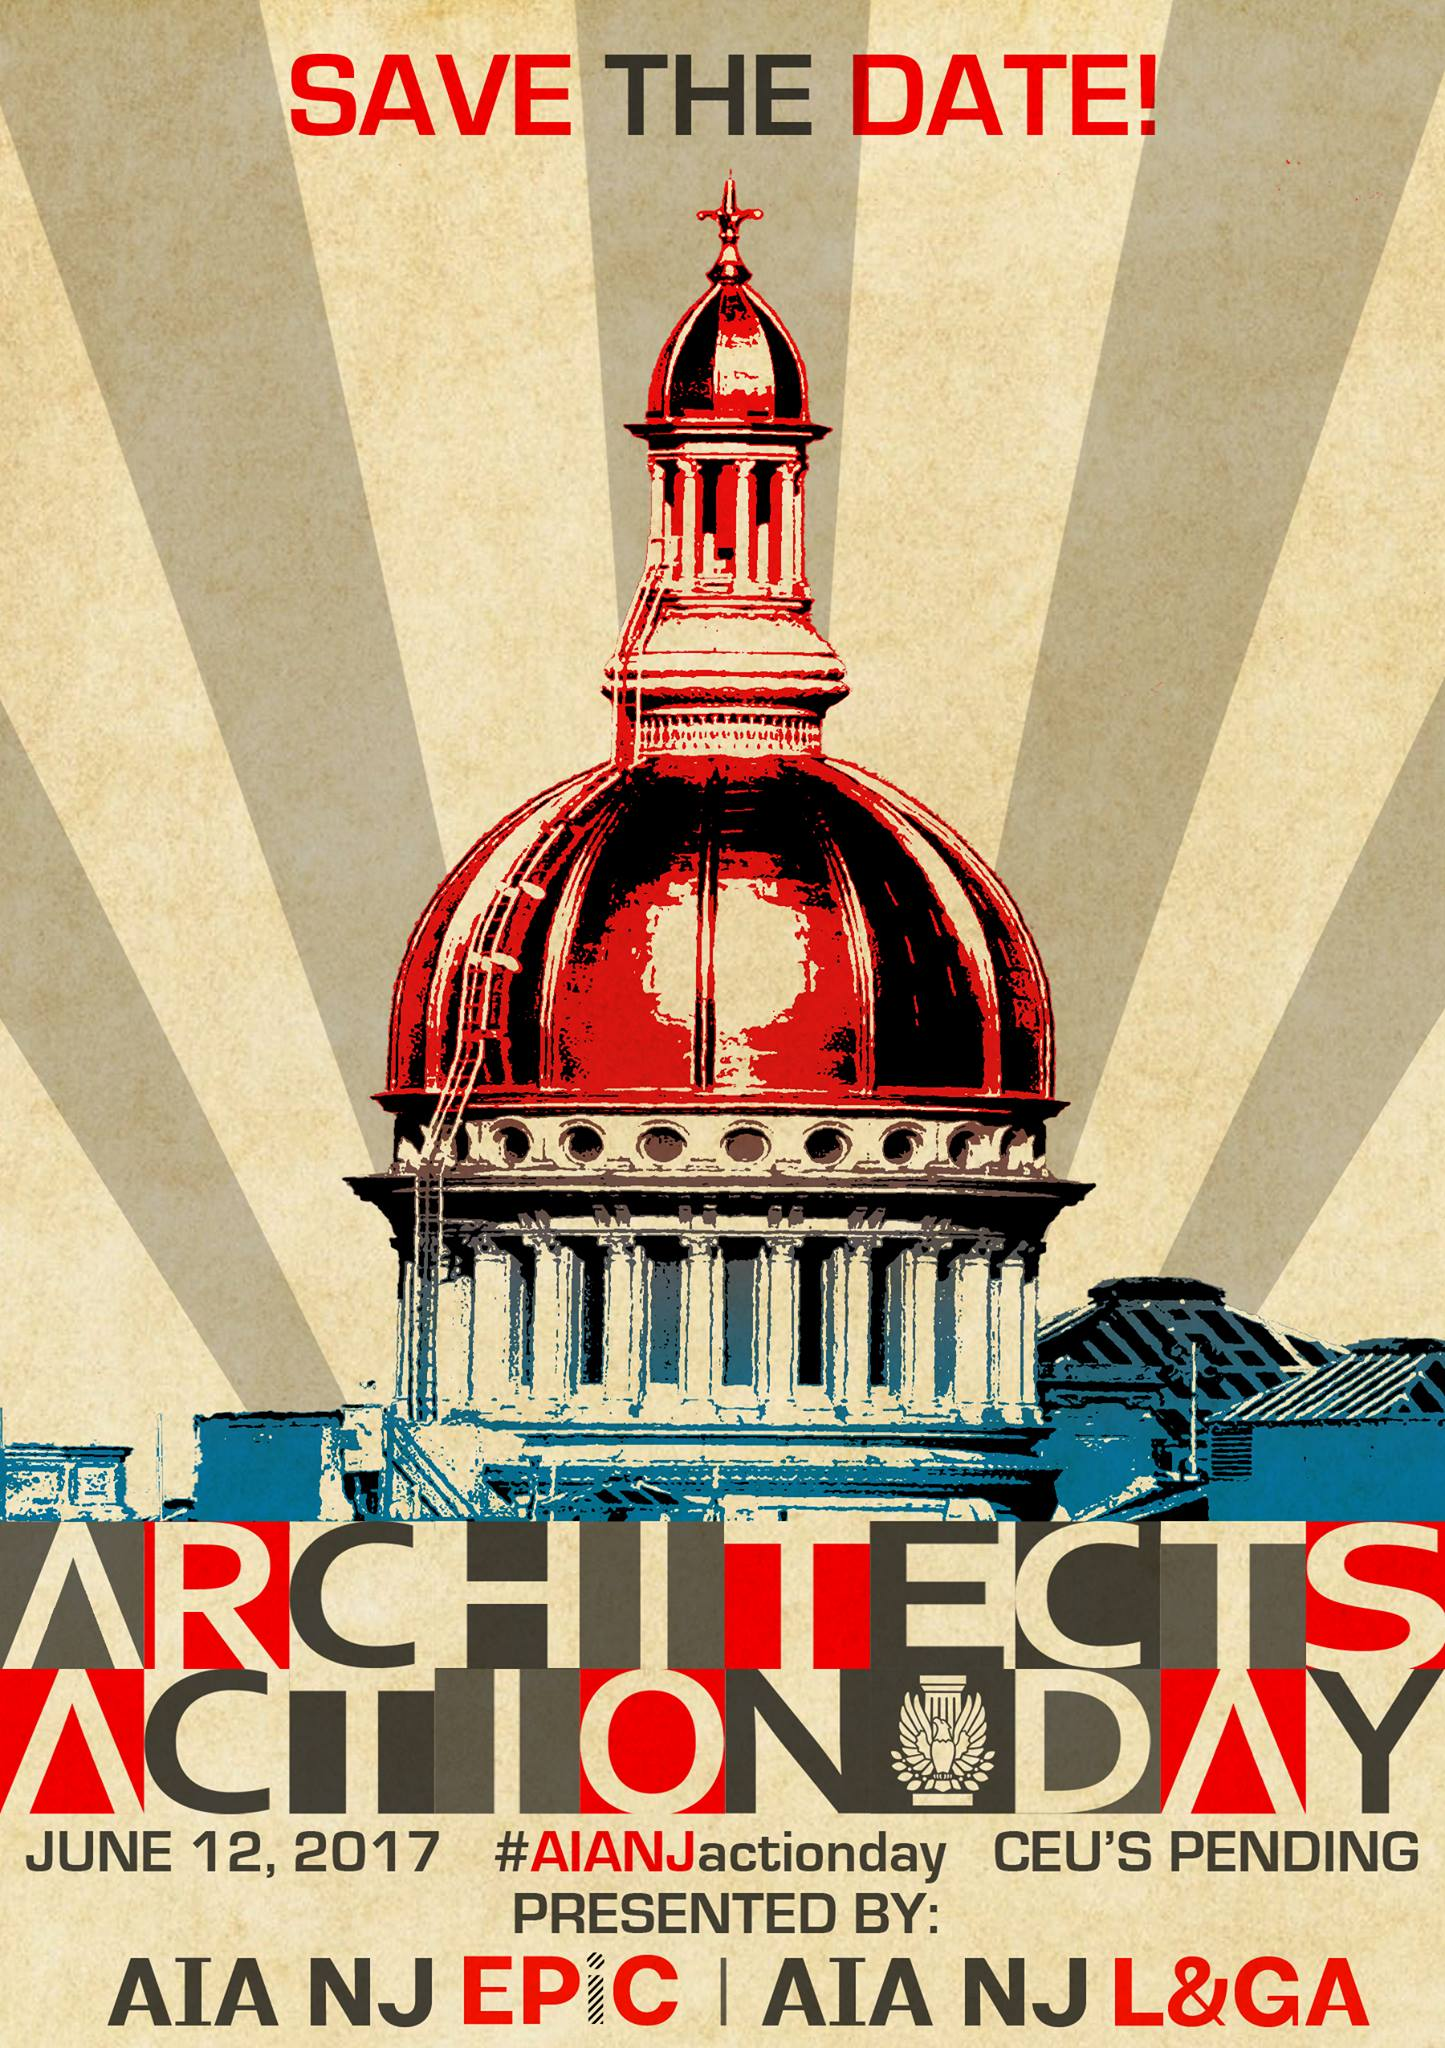 AIANJ_ArchActionDay2017